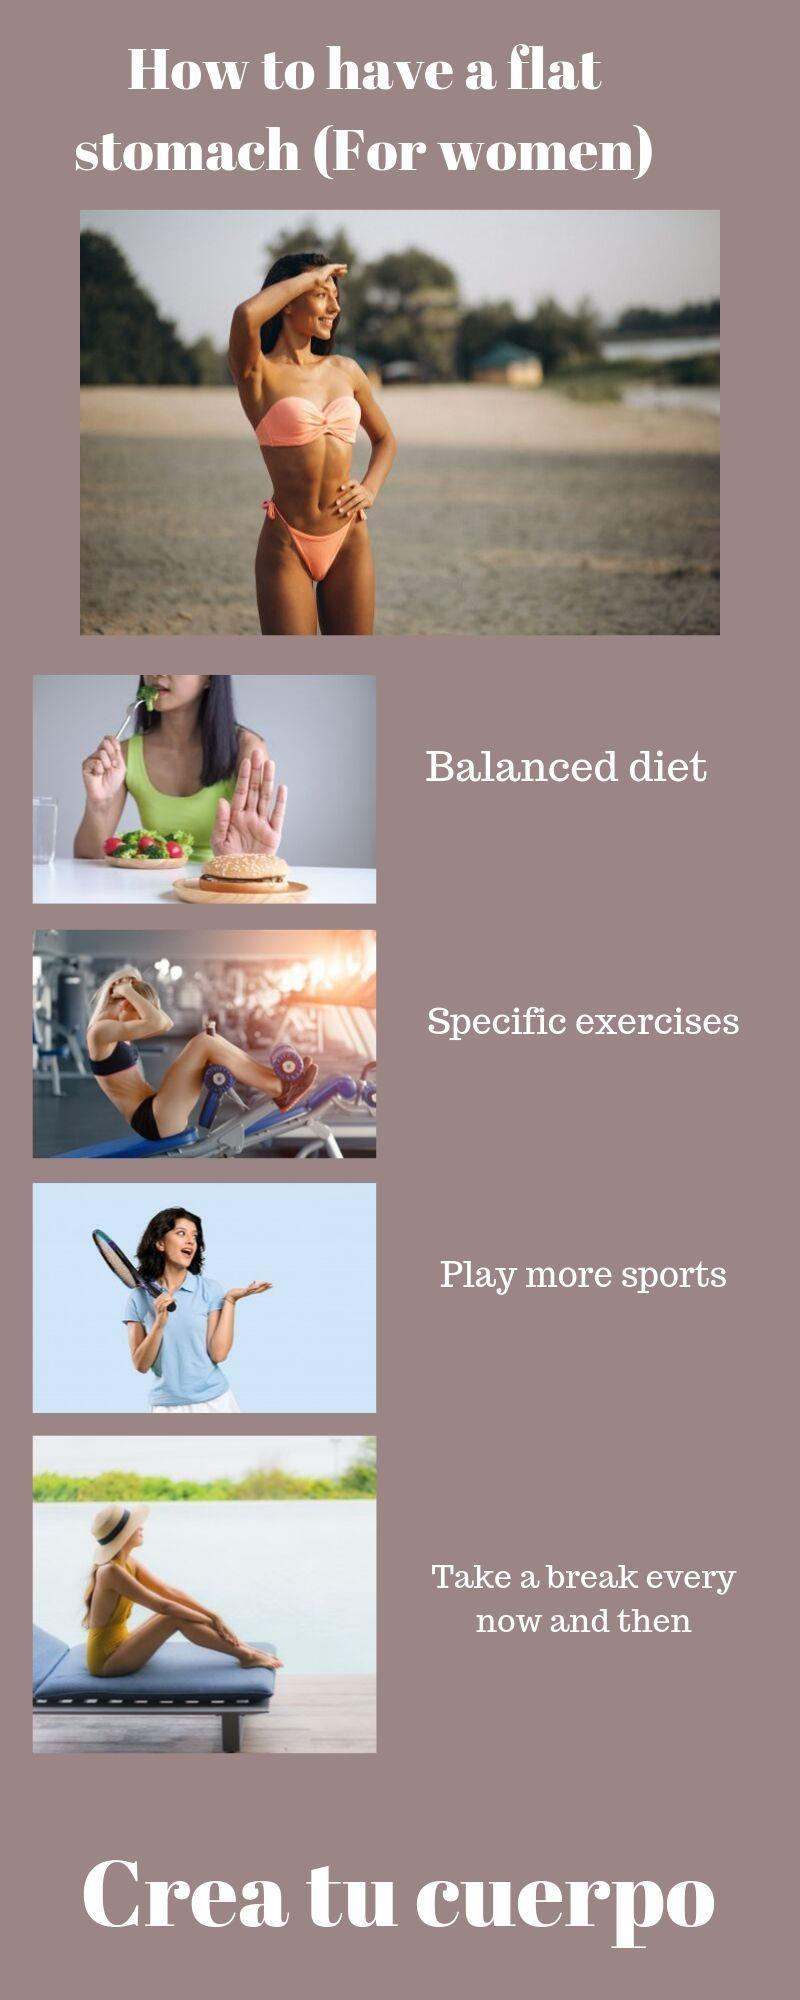 Visual overview of how to get a flat stomach